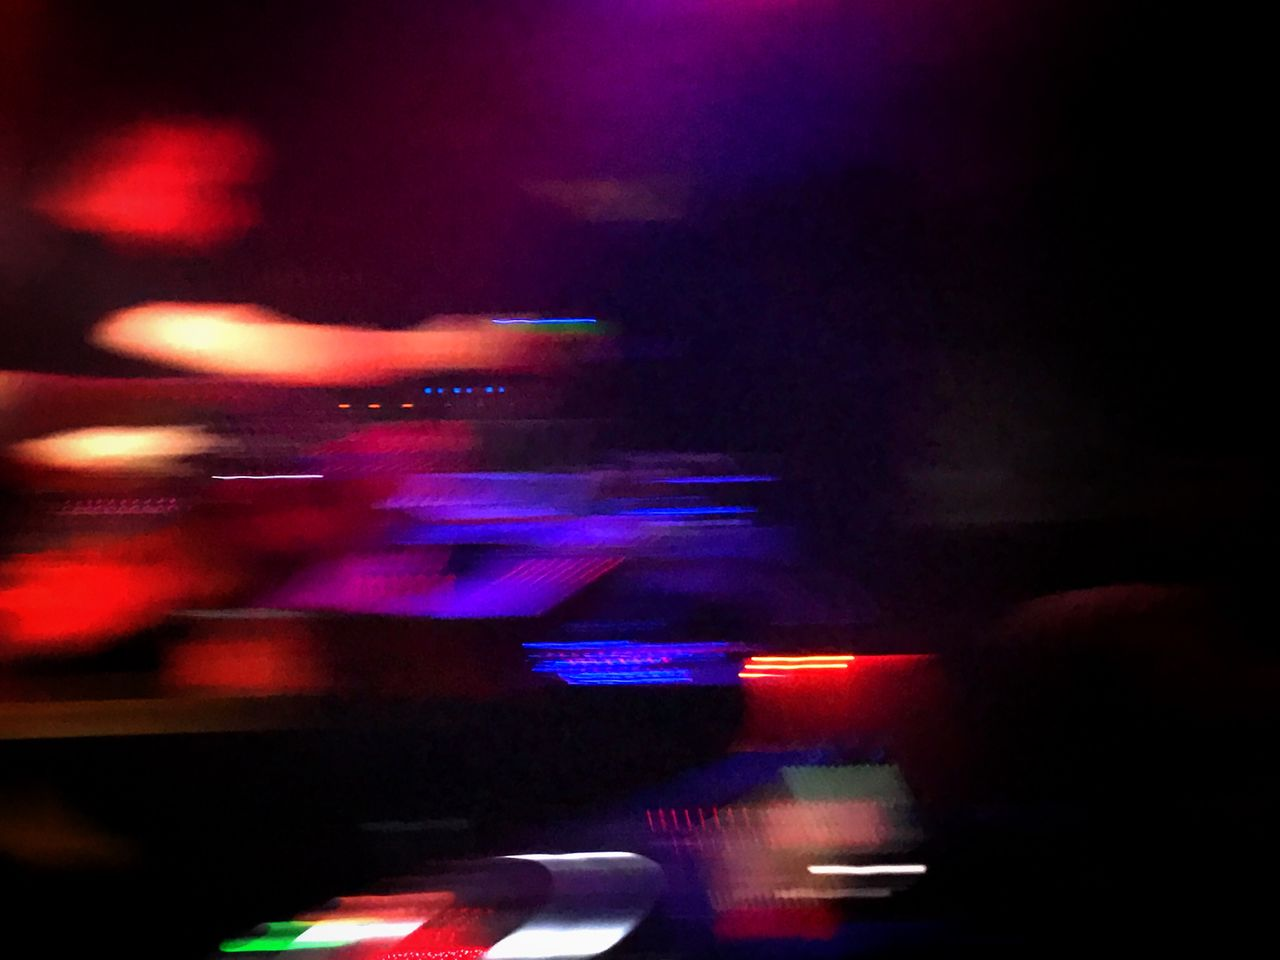 illuminated, night, blurred motion, arts culture and entertainment, burning, flame, motion, music, indoors, long exposure, nightlife, heat - temperature, celebration, real people, nightclub, technology, close-up, record player needle